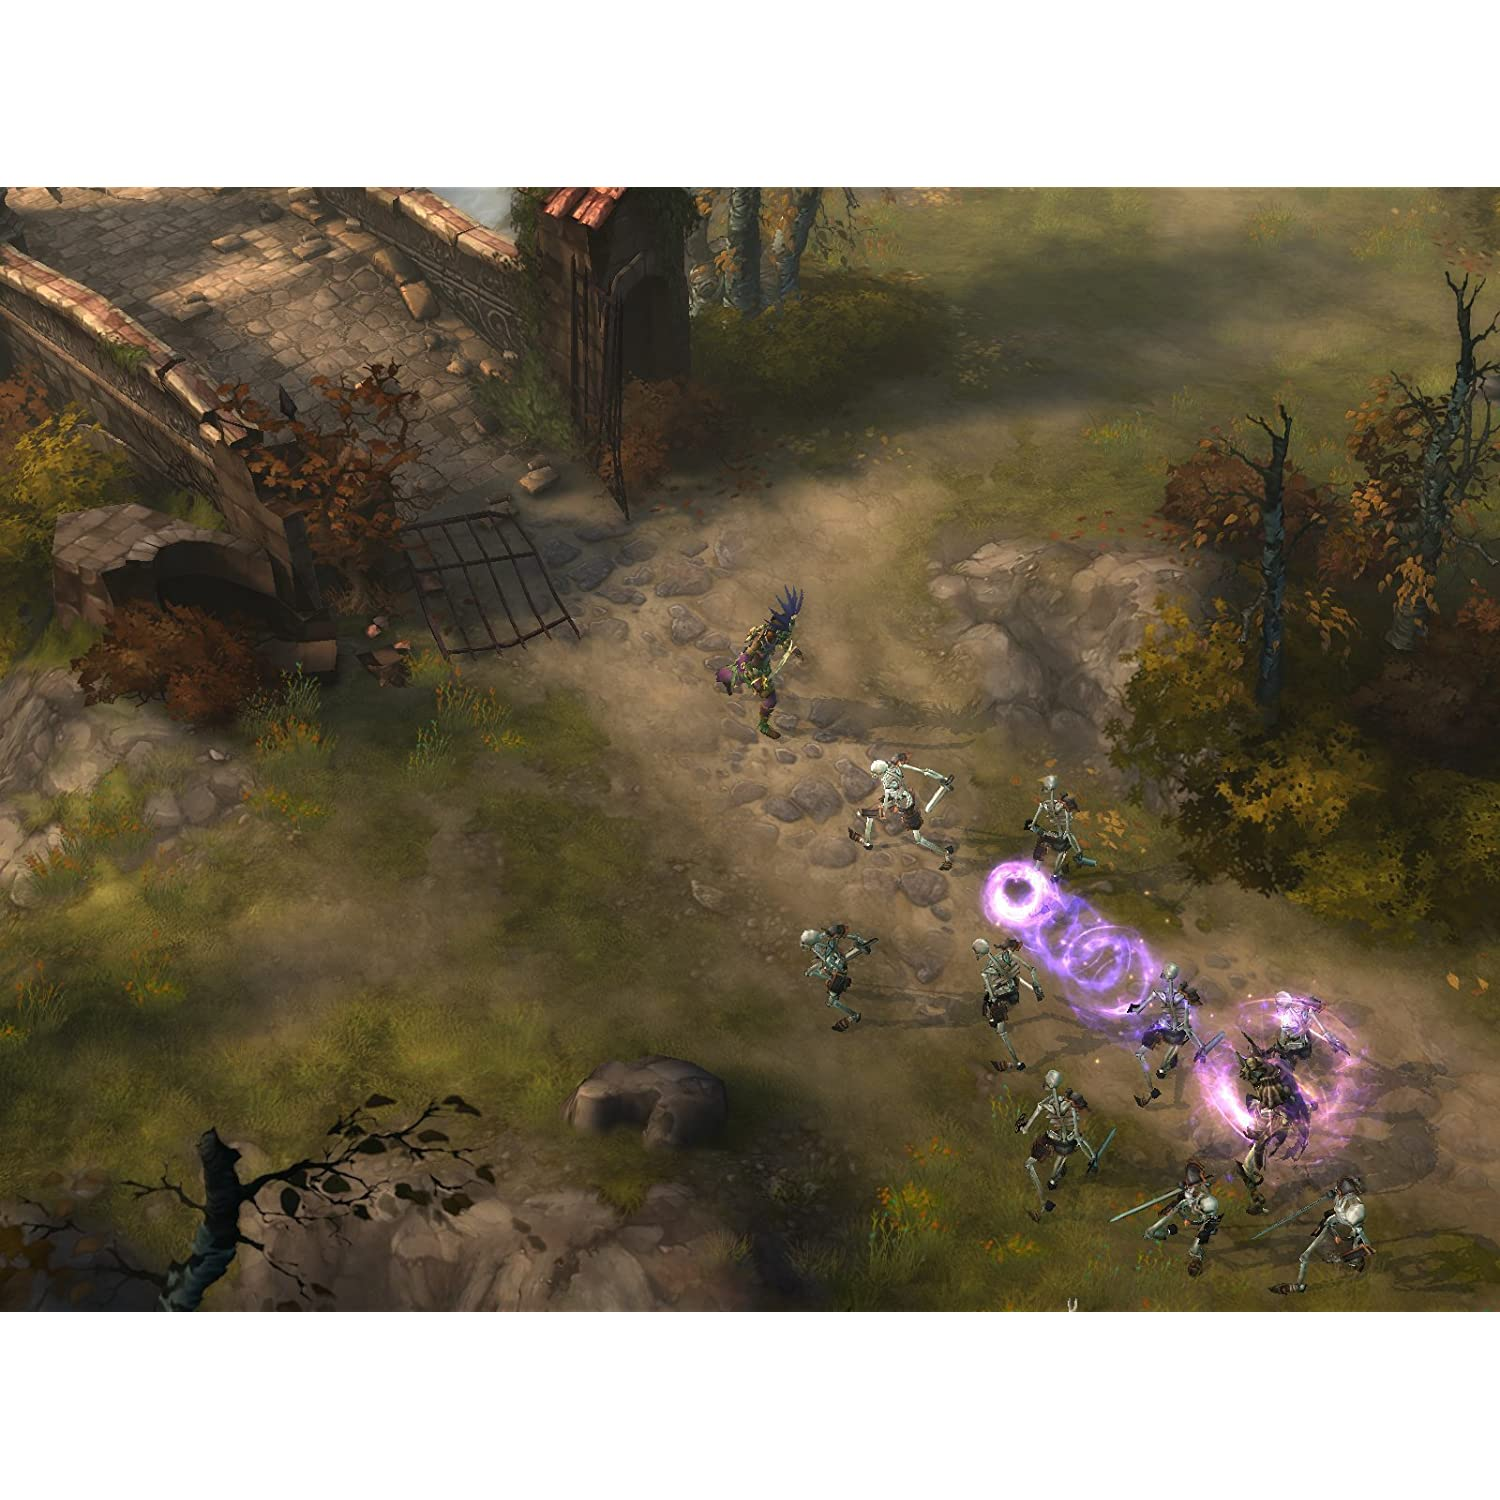 Online Game, Online Games, Video Game, Video Games, PC Games, Role-Playing, Action Rpg, Diablo III